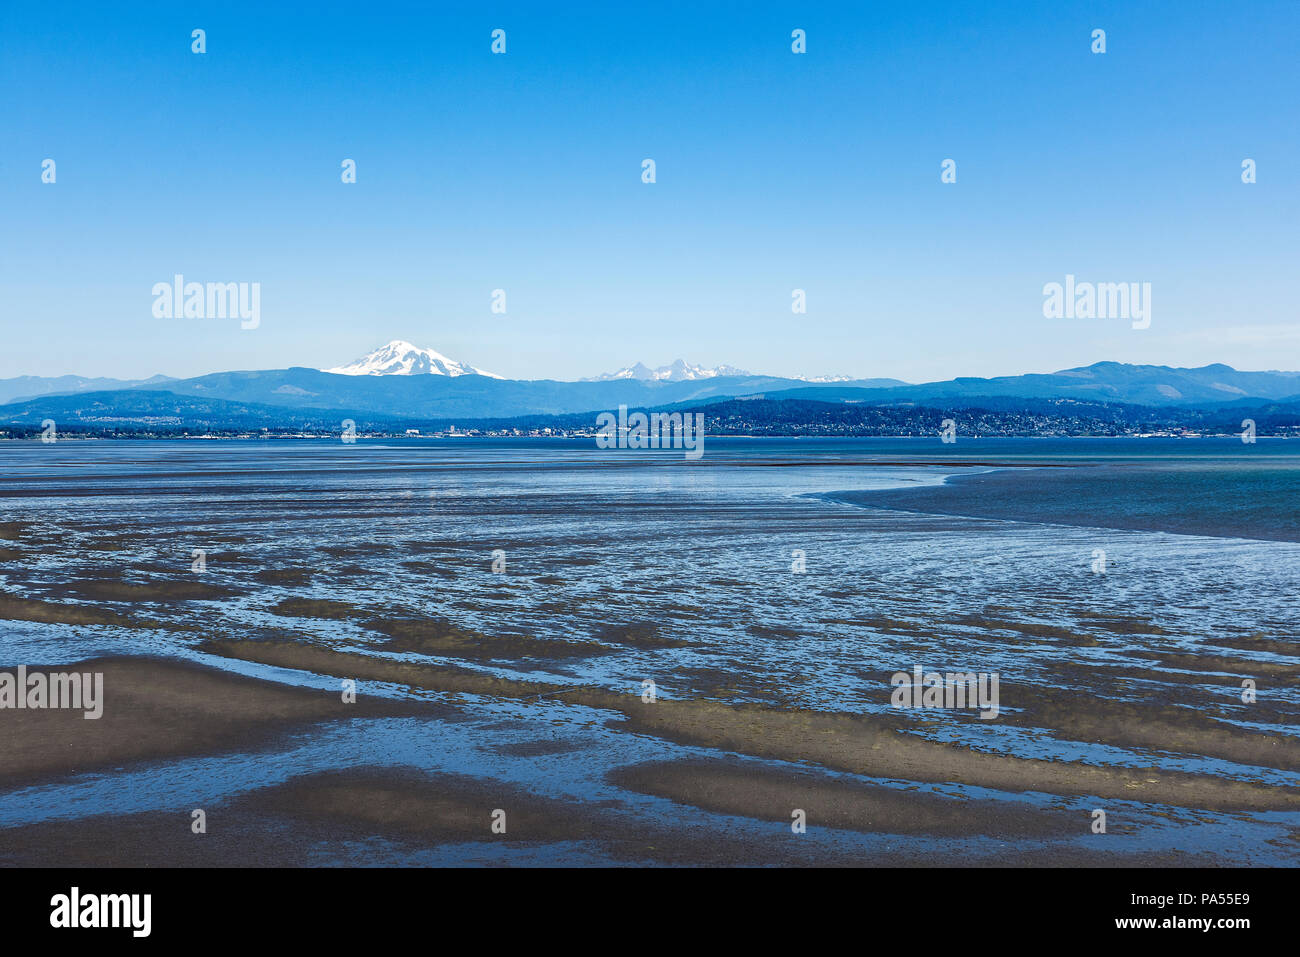 Mt. Baker and the 'Sisters' across Bellingham Bay, Bellingham, Washington, Pacific Northwest, USA. - Stock Image